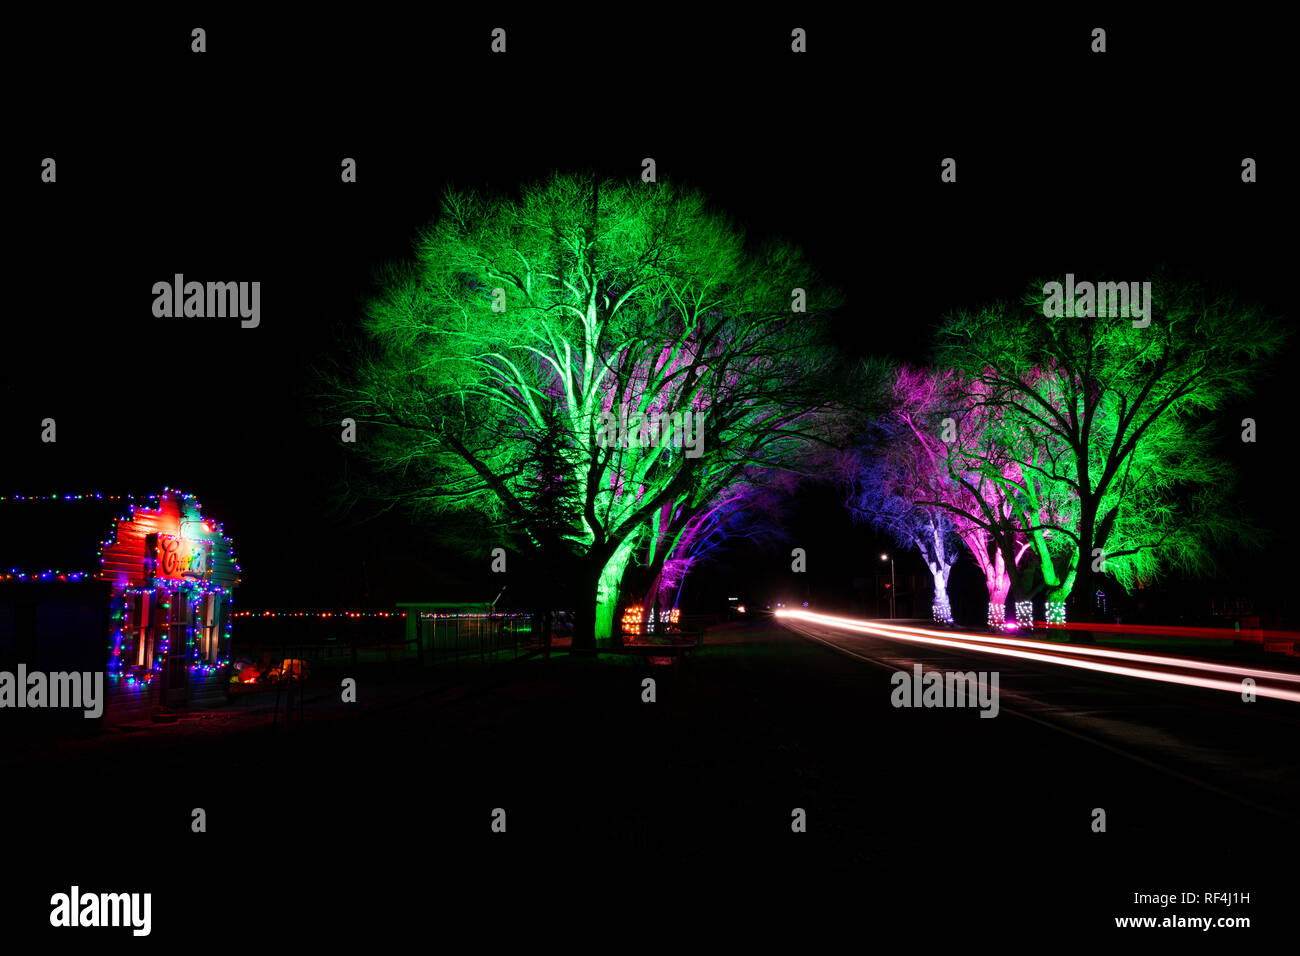 Colorful holiday lights, Torrey, Utah - Stock Image